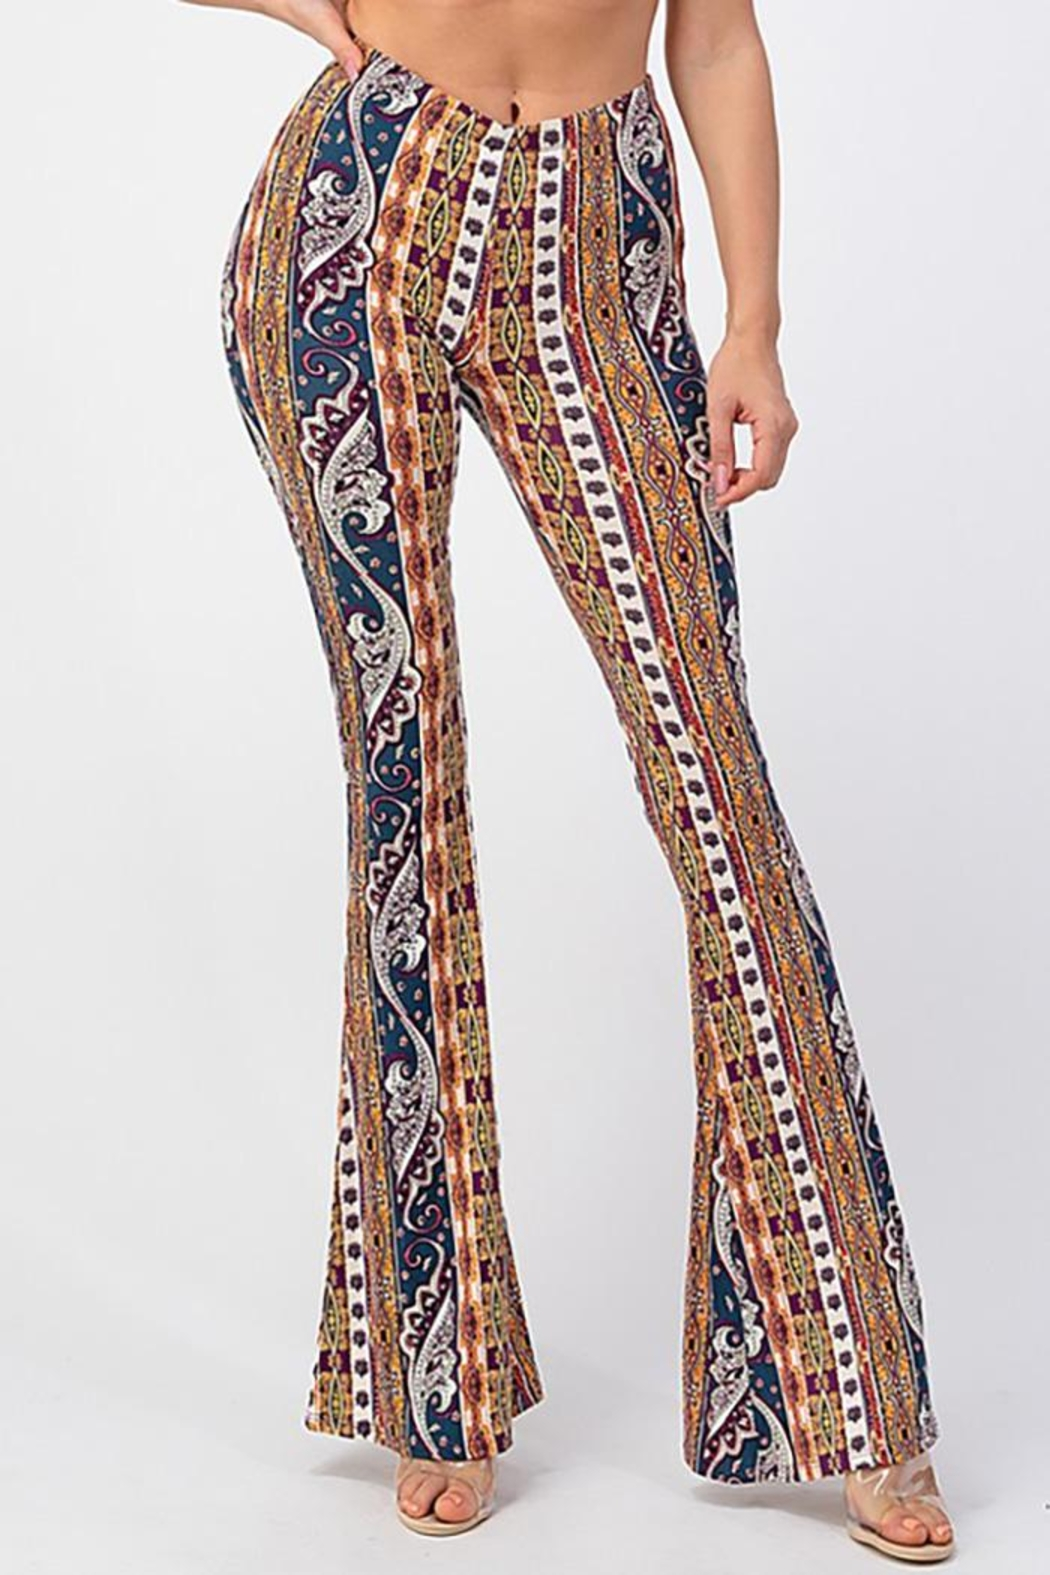 Bear Dance Printed Flair Palazzo Pants - Side Cropped Image